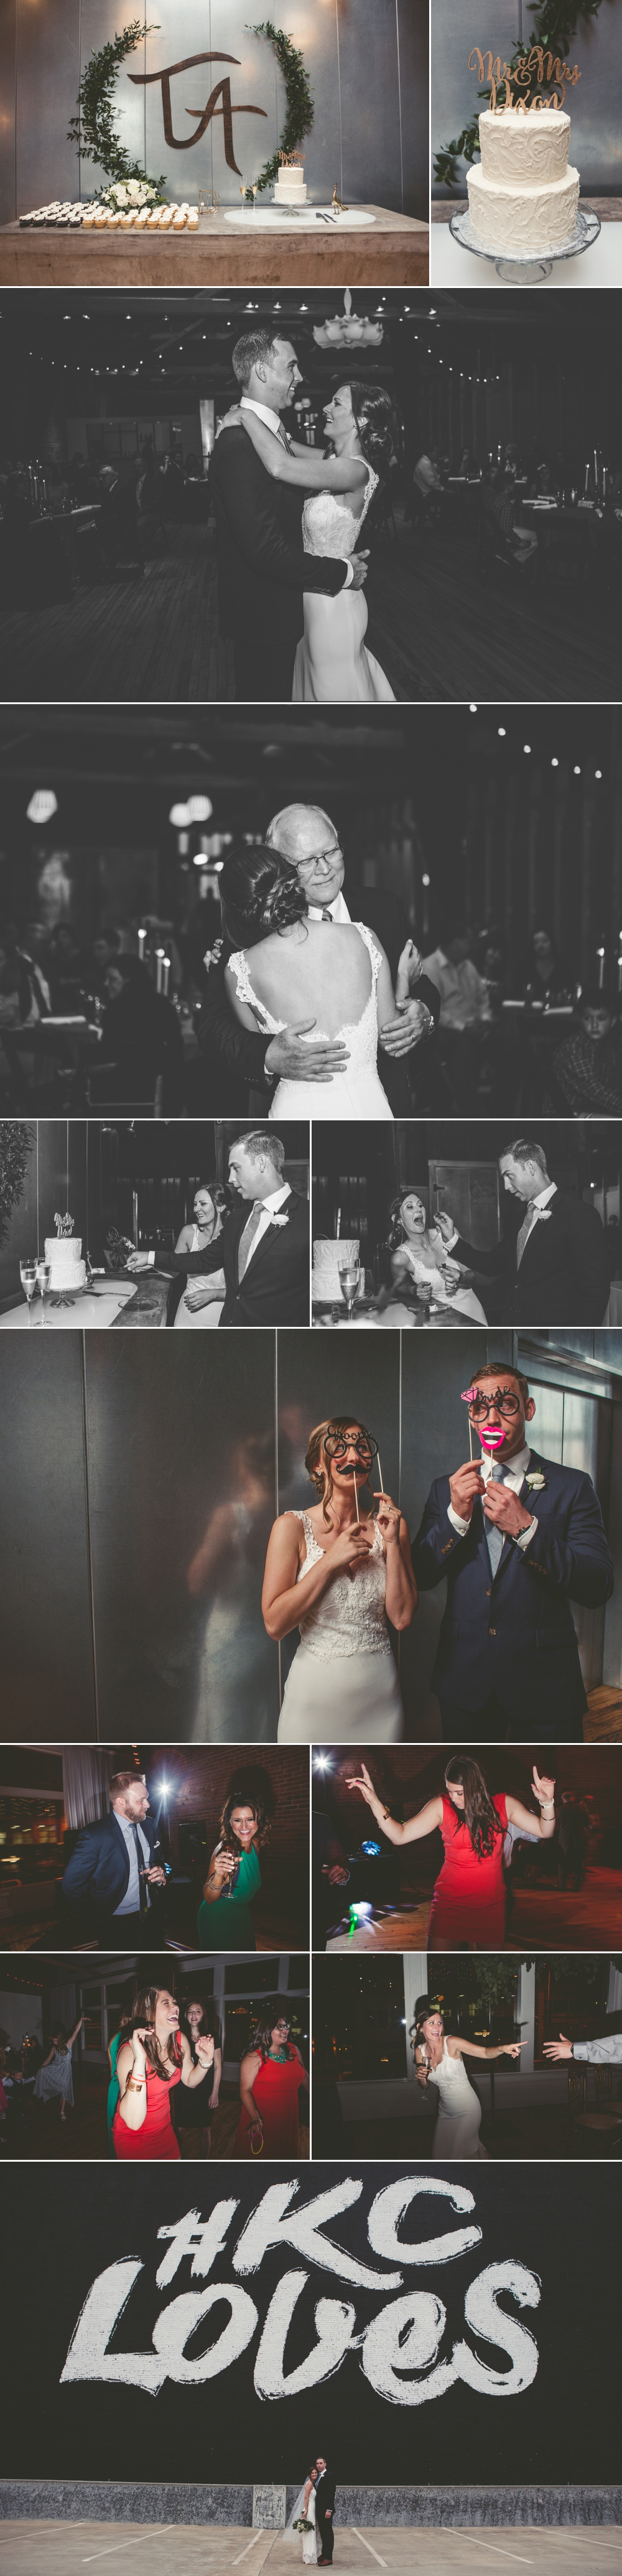 jason_domingues_photography_best_kansas_city_wedding_photographer_kc_weddings_berg_0003